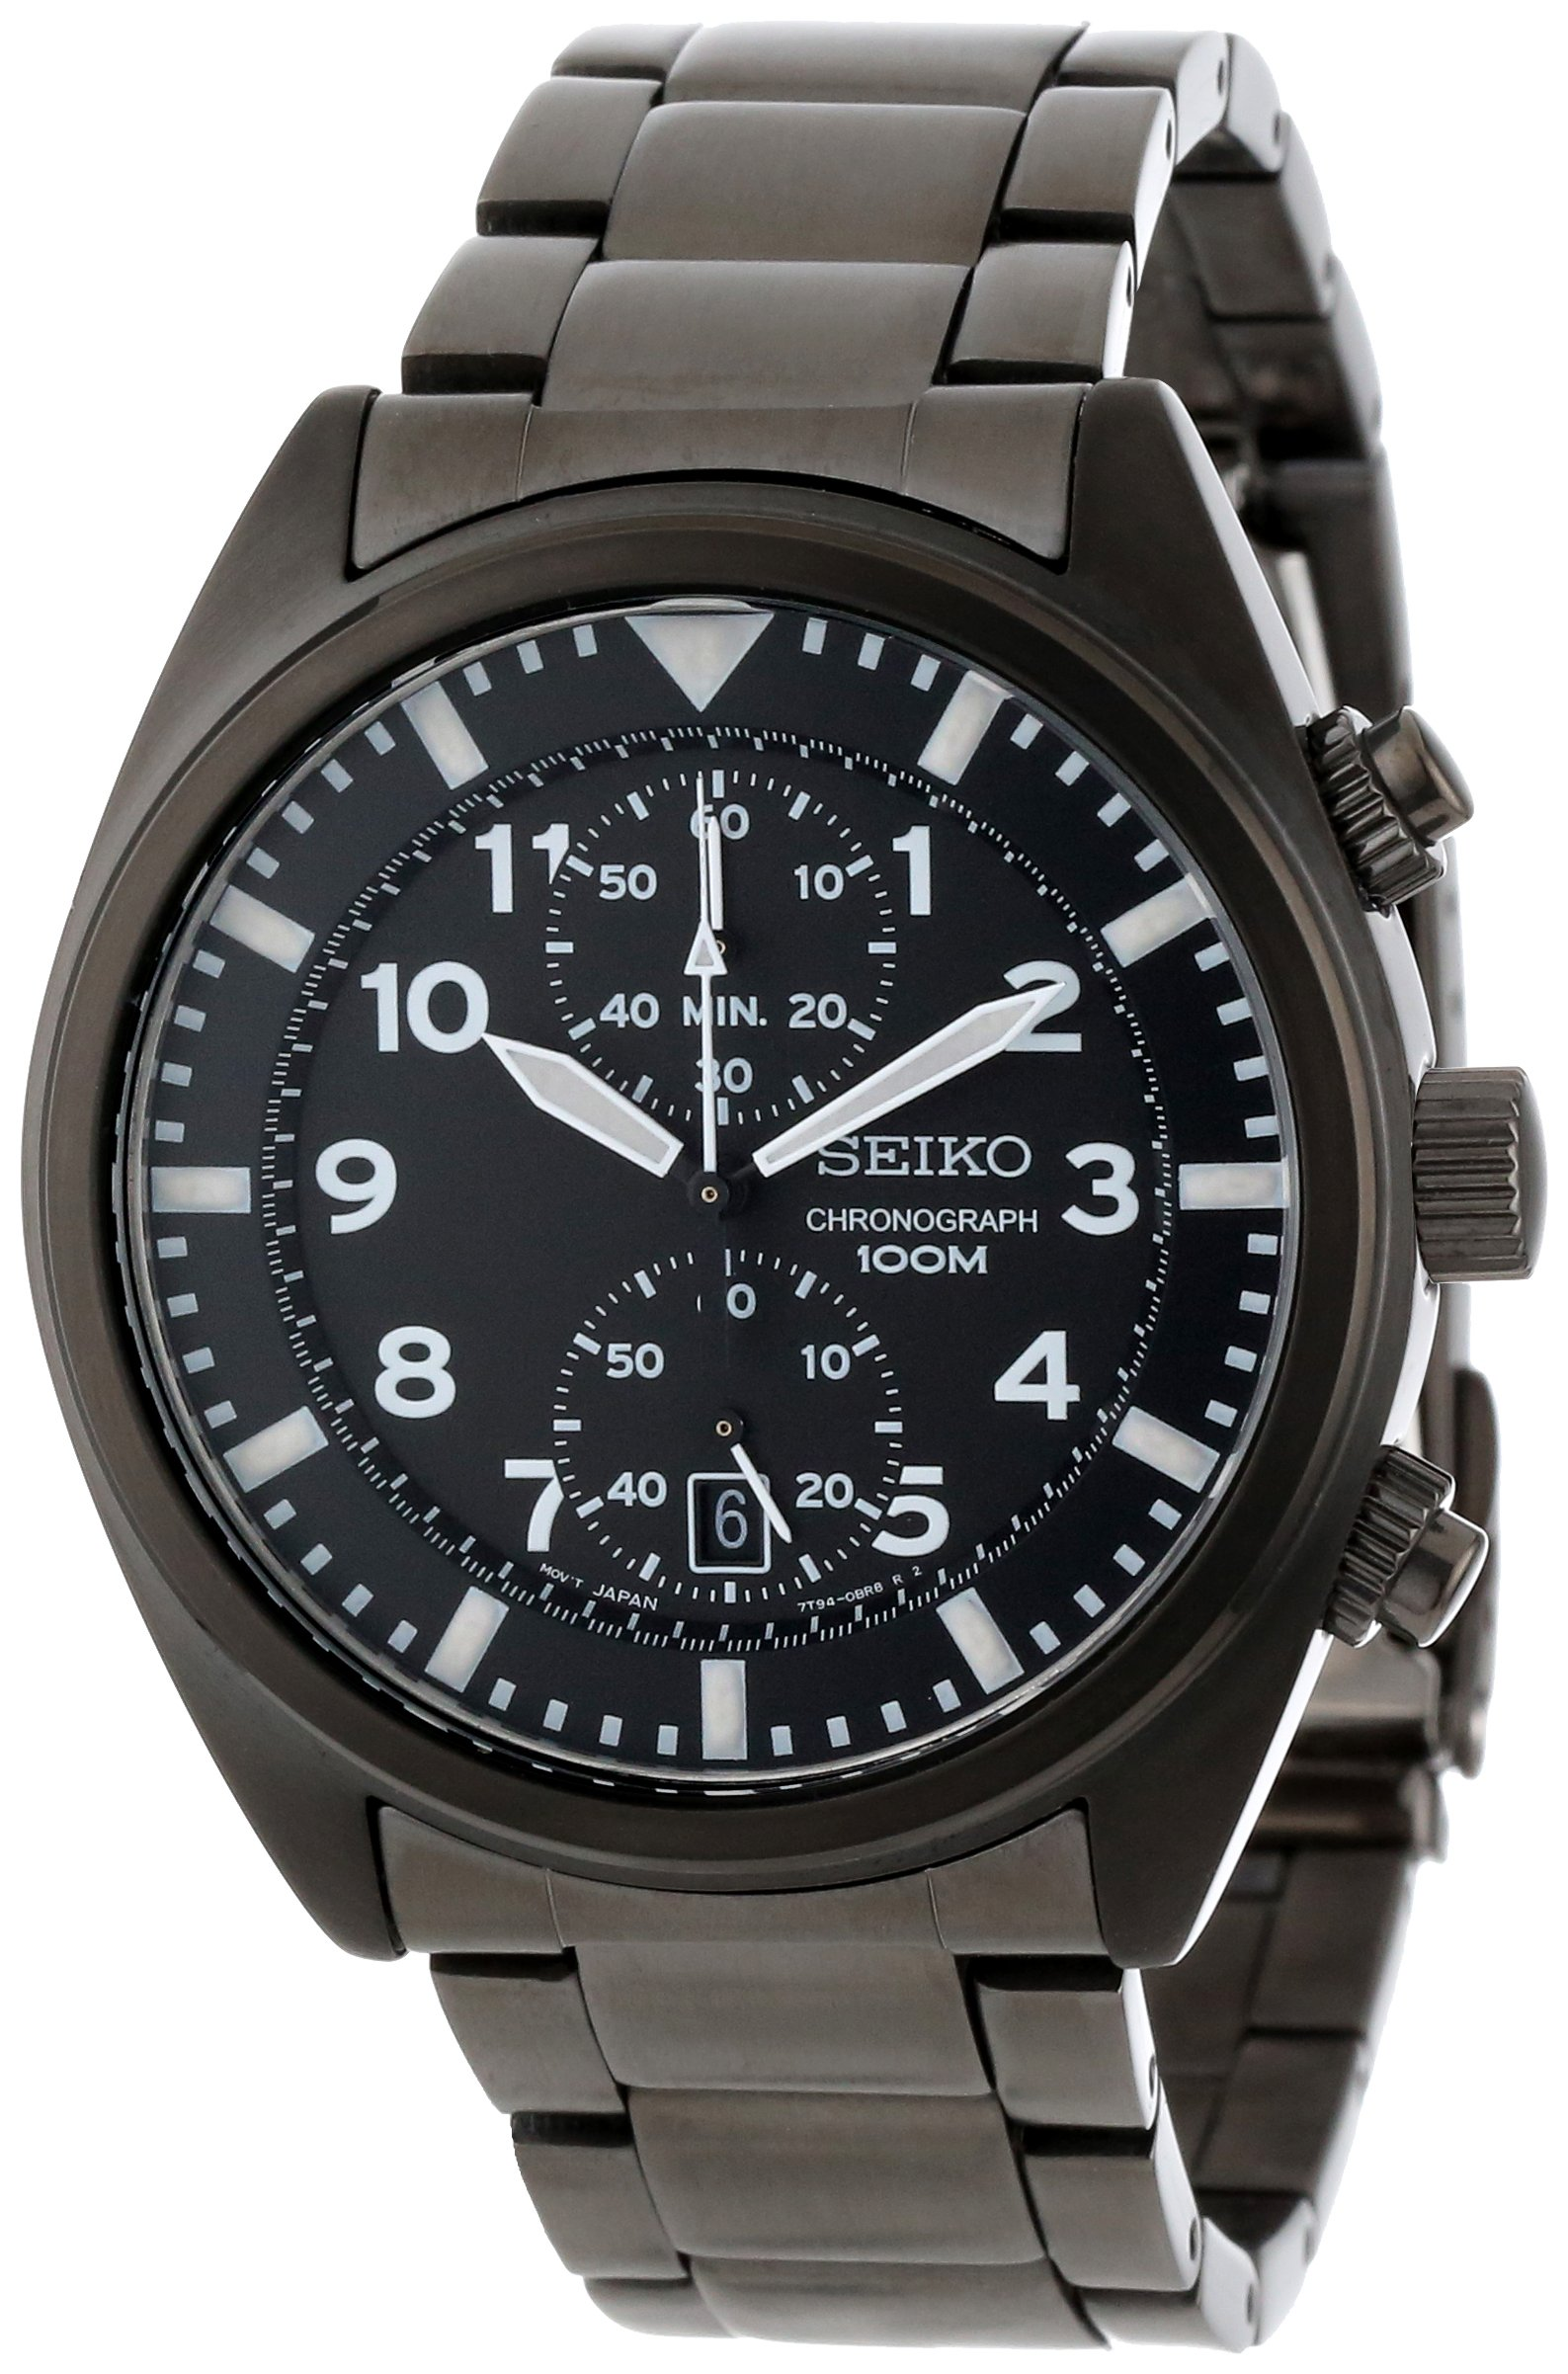 Seiko Men's SNN233 Stainless Steel Watch